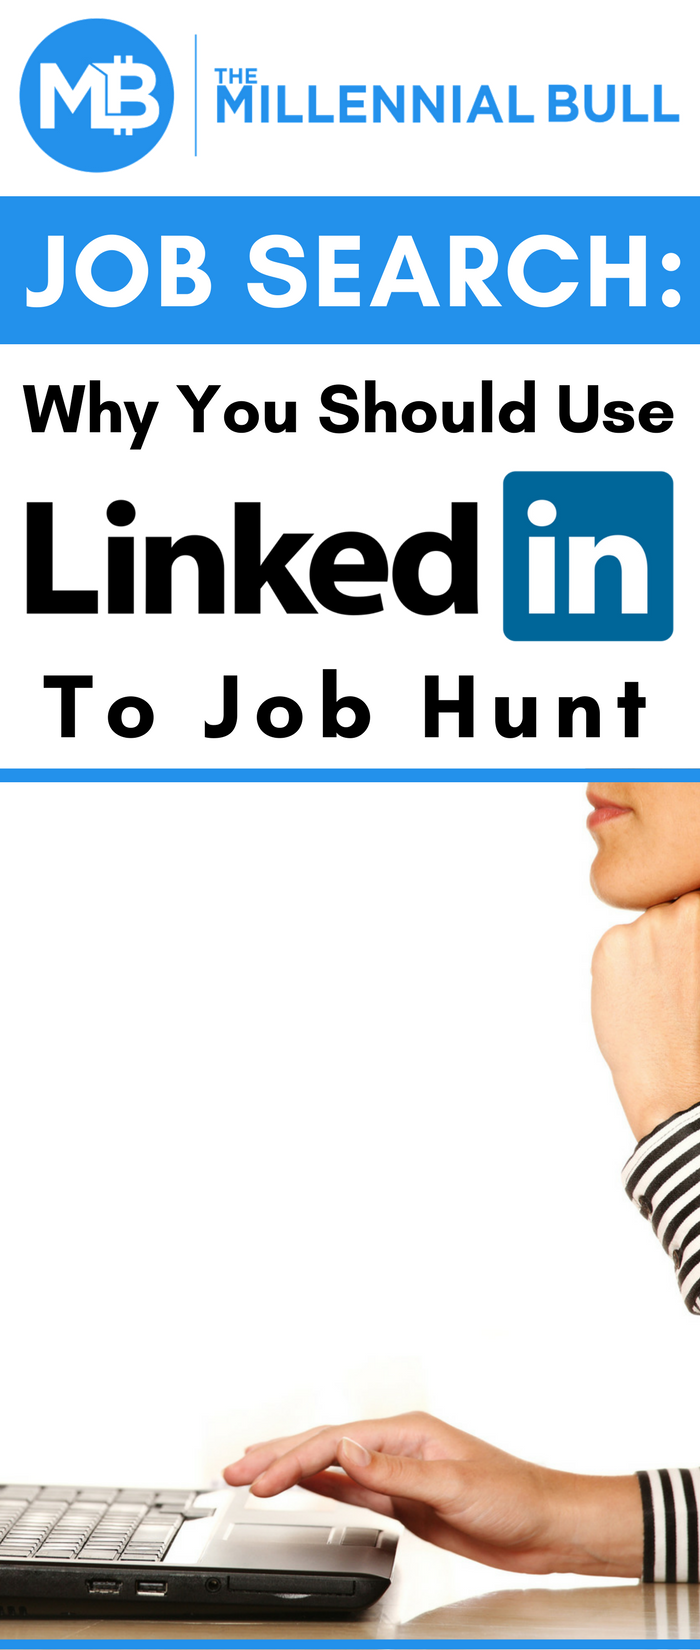 Job Search Why Use LinkedIn To Job Hunt The Millennial